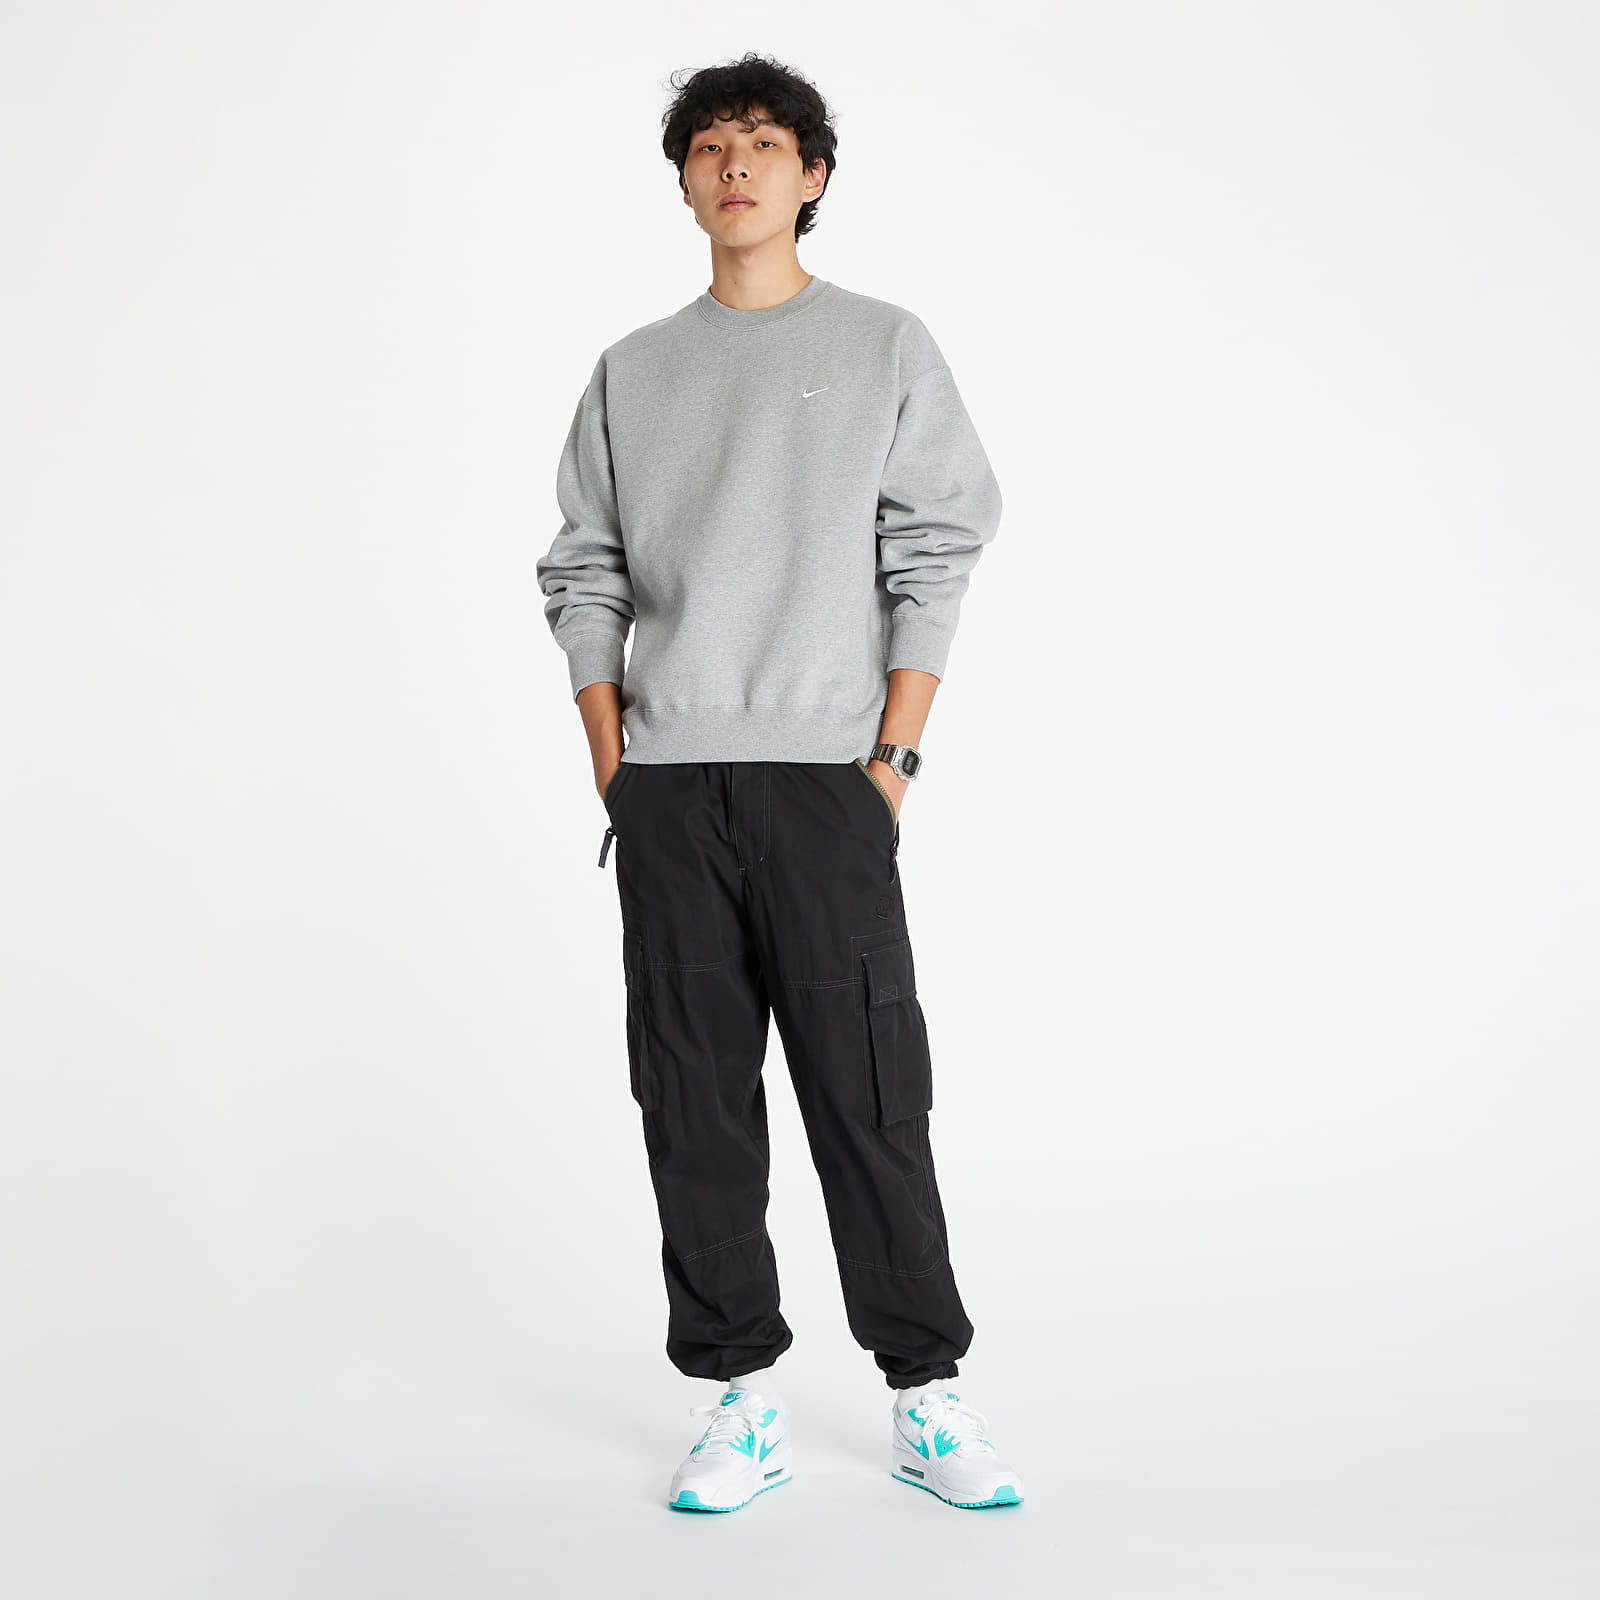 Mikiny a svetre Nike Nrg SoloSwoosh Crew Fleece Dk Grey Heather/ White